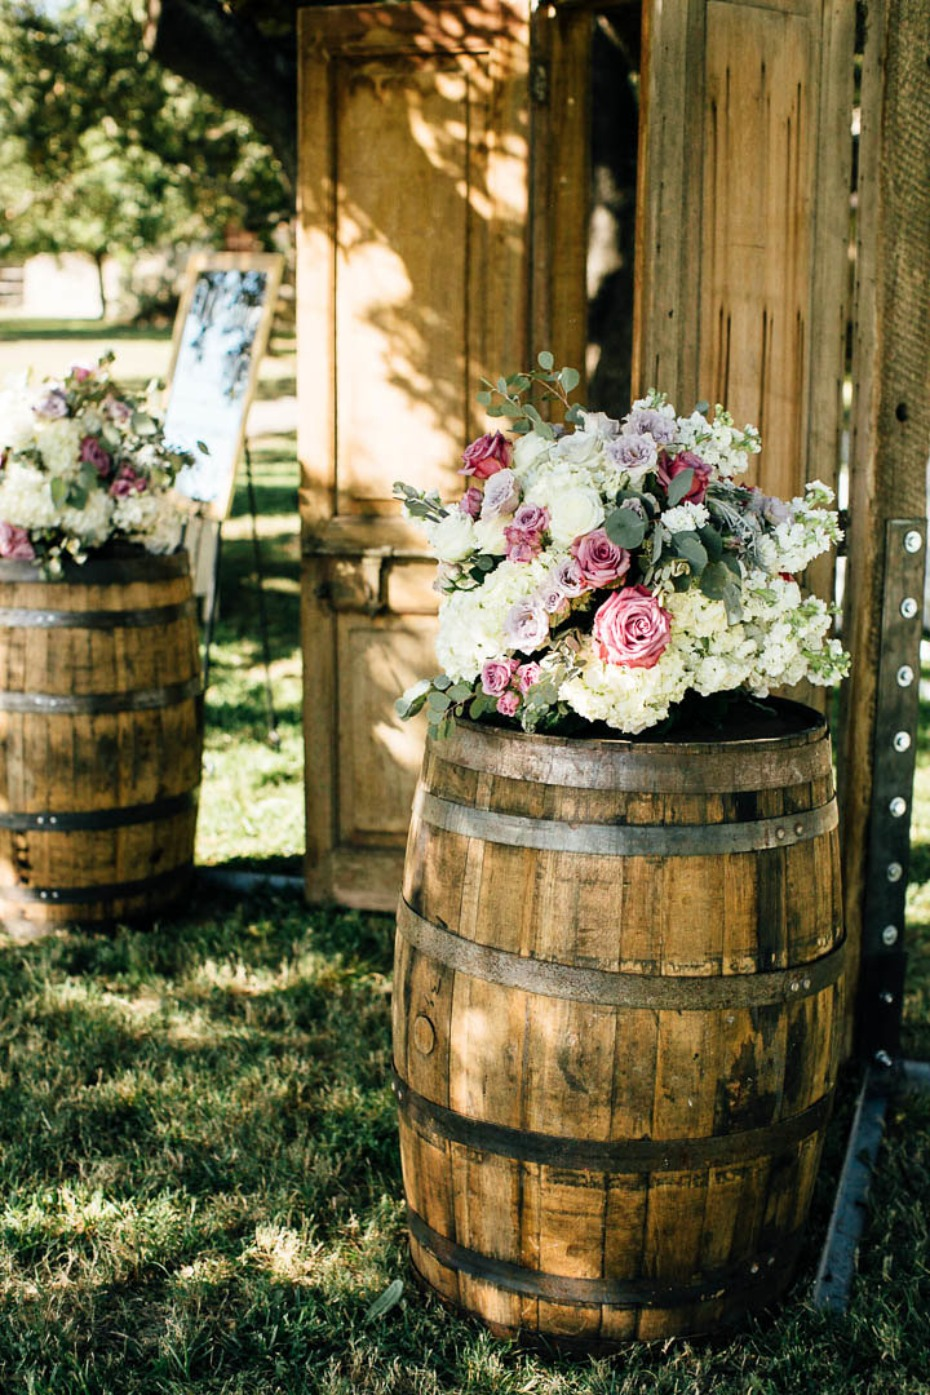 Rustic wine barrel decor for the ceremony